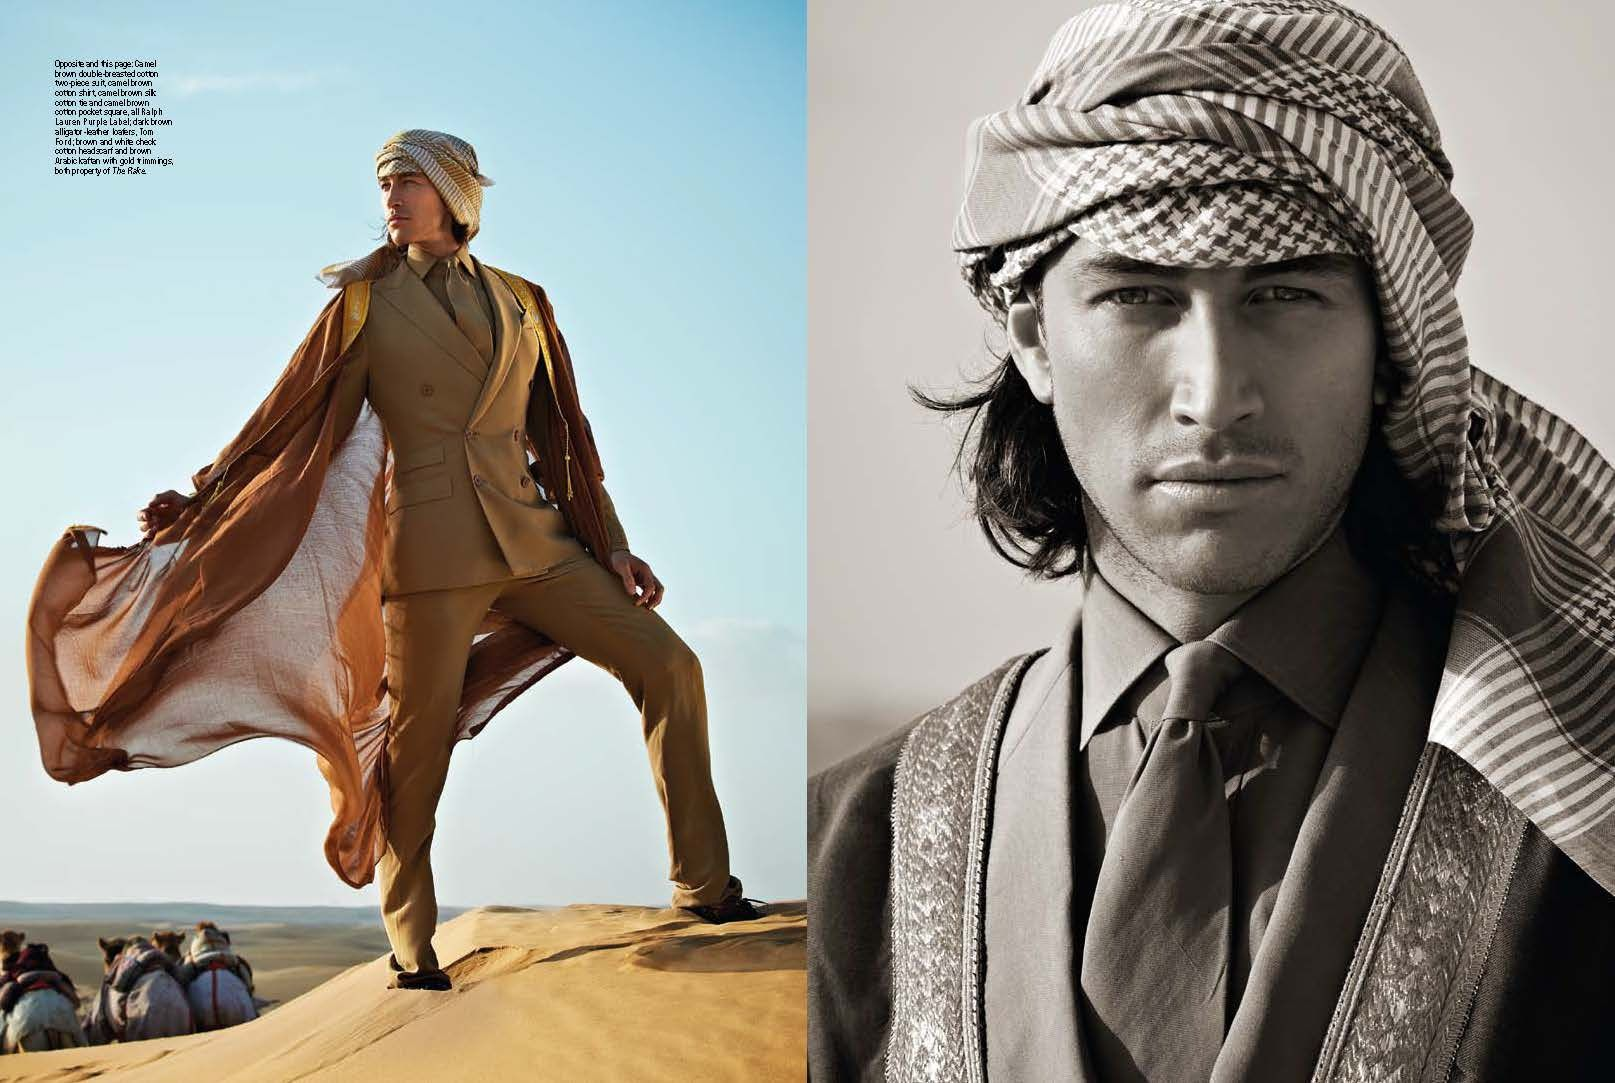 Arabian Heights Dubai Fashion Page 02 Fashion Shoot for Rake Singapore Photographer - Oliver Doran Model - Paul Frangie